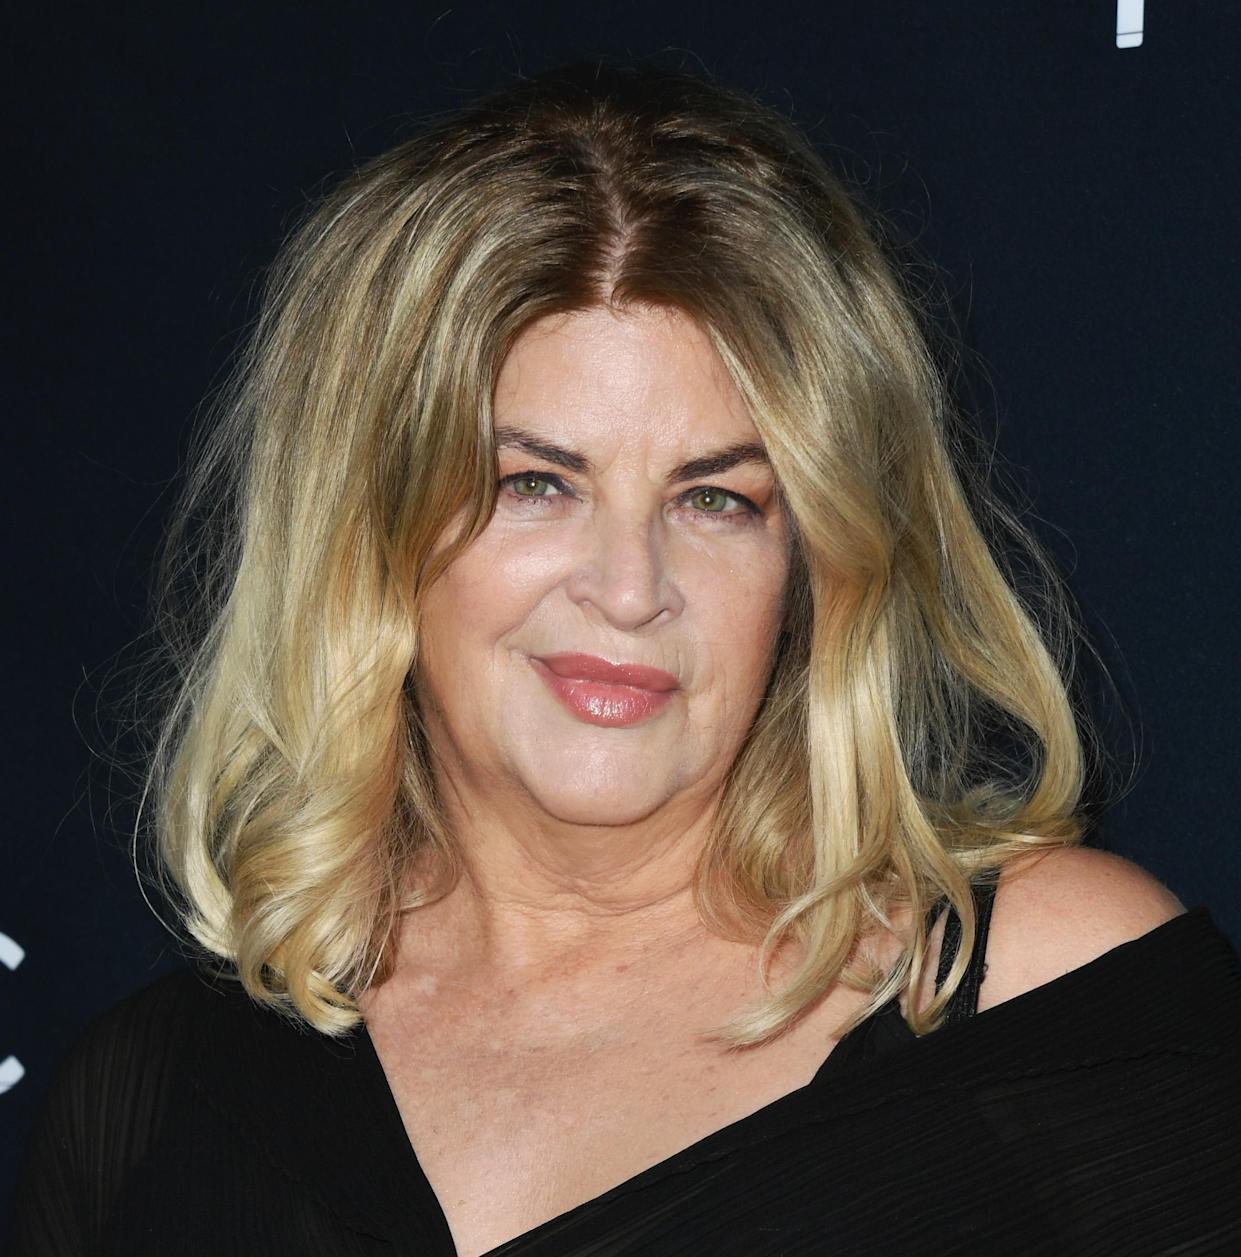 Kirstie Alley says she'd 'rather be a prick' than PC